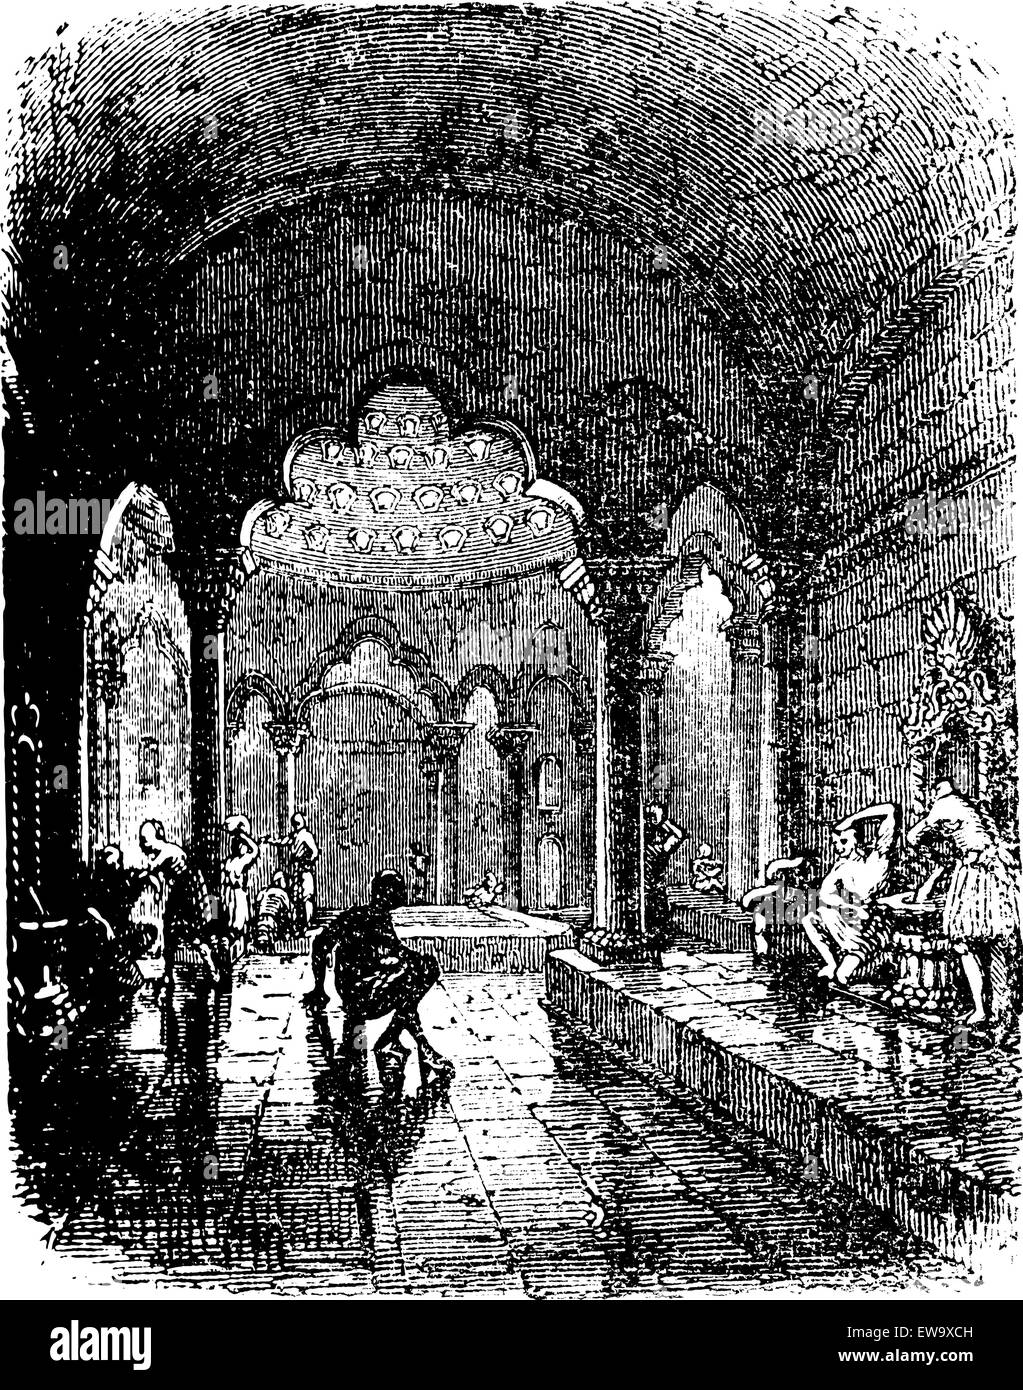 Turkish Bath, during the 1890s, vintage engraving. Old engraved illustration of a Turkish Bath. - Stock Vector